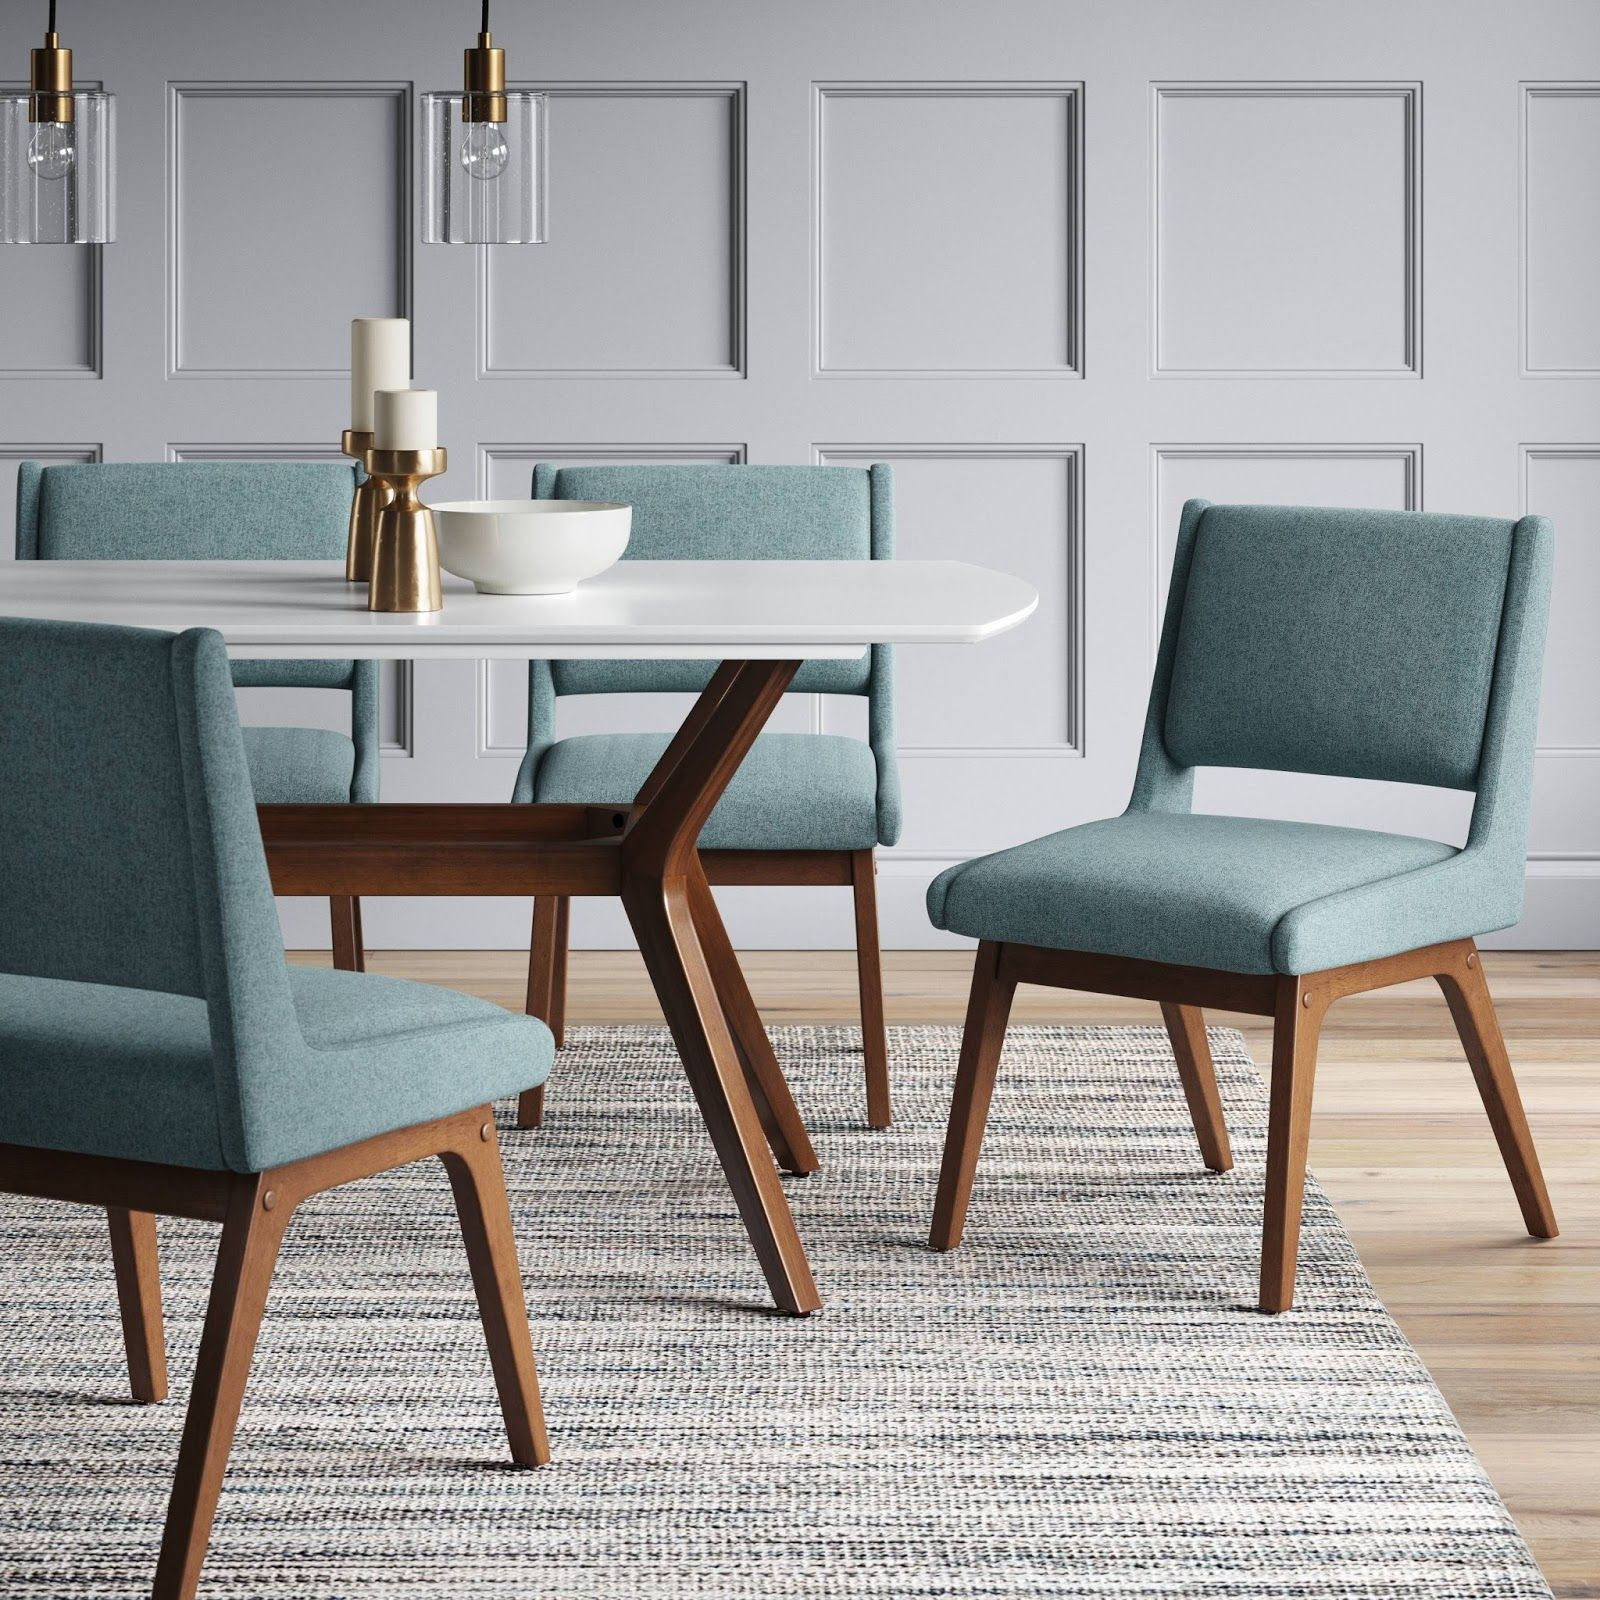 Dining Room Chairs Target Picks From Target 39s Project 62 Line Dining Room Dining